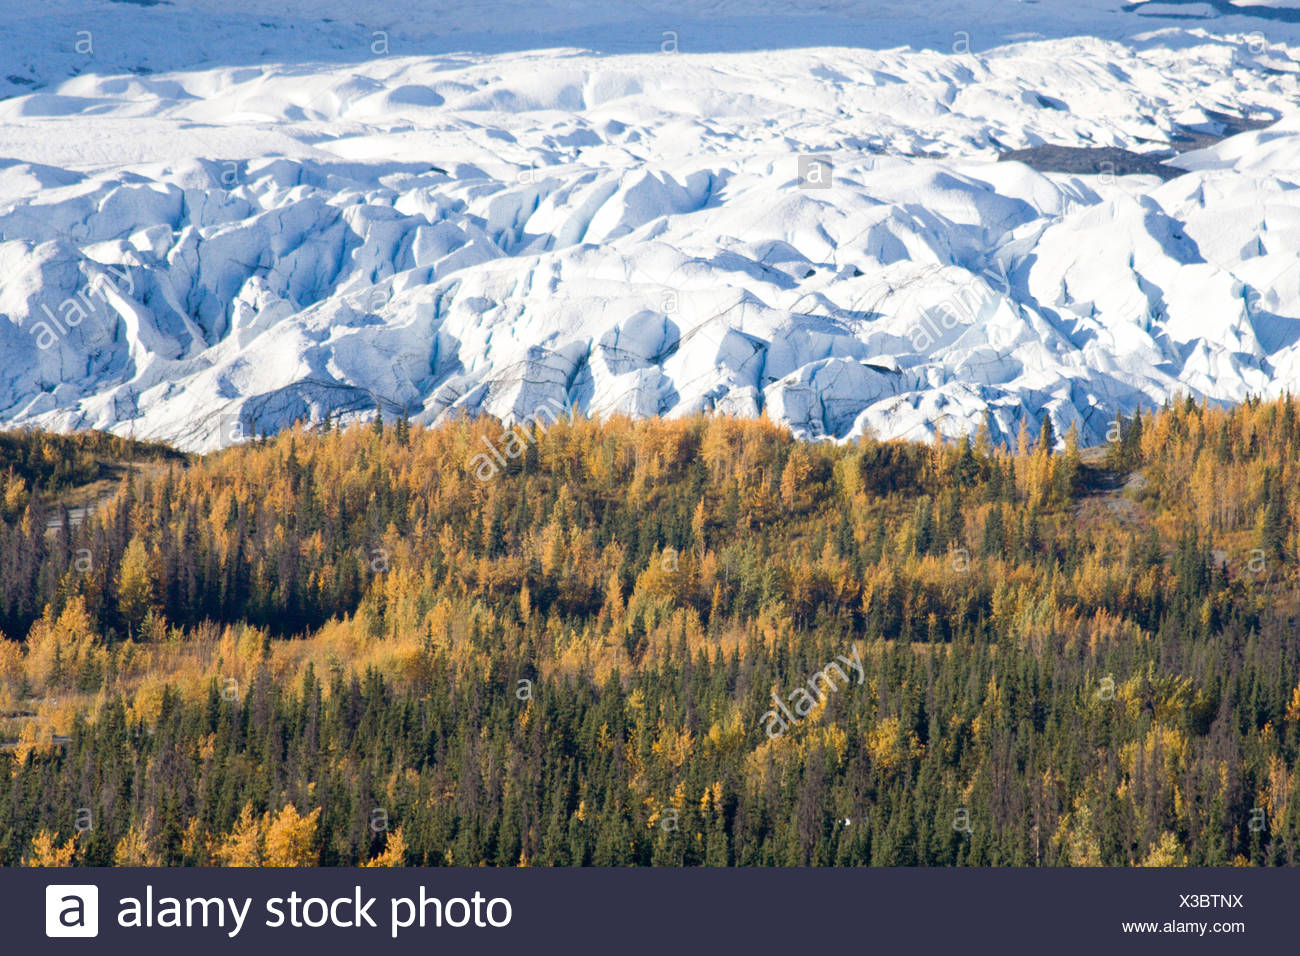 Matanuska Glacier, Chugach Mountains, Alaska, USA - Stock Image